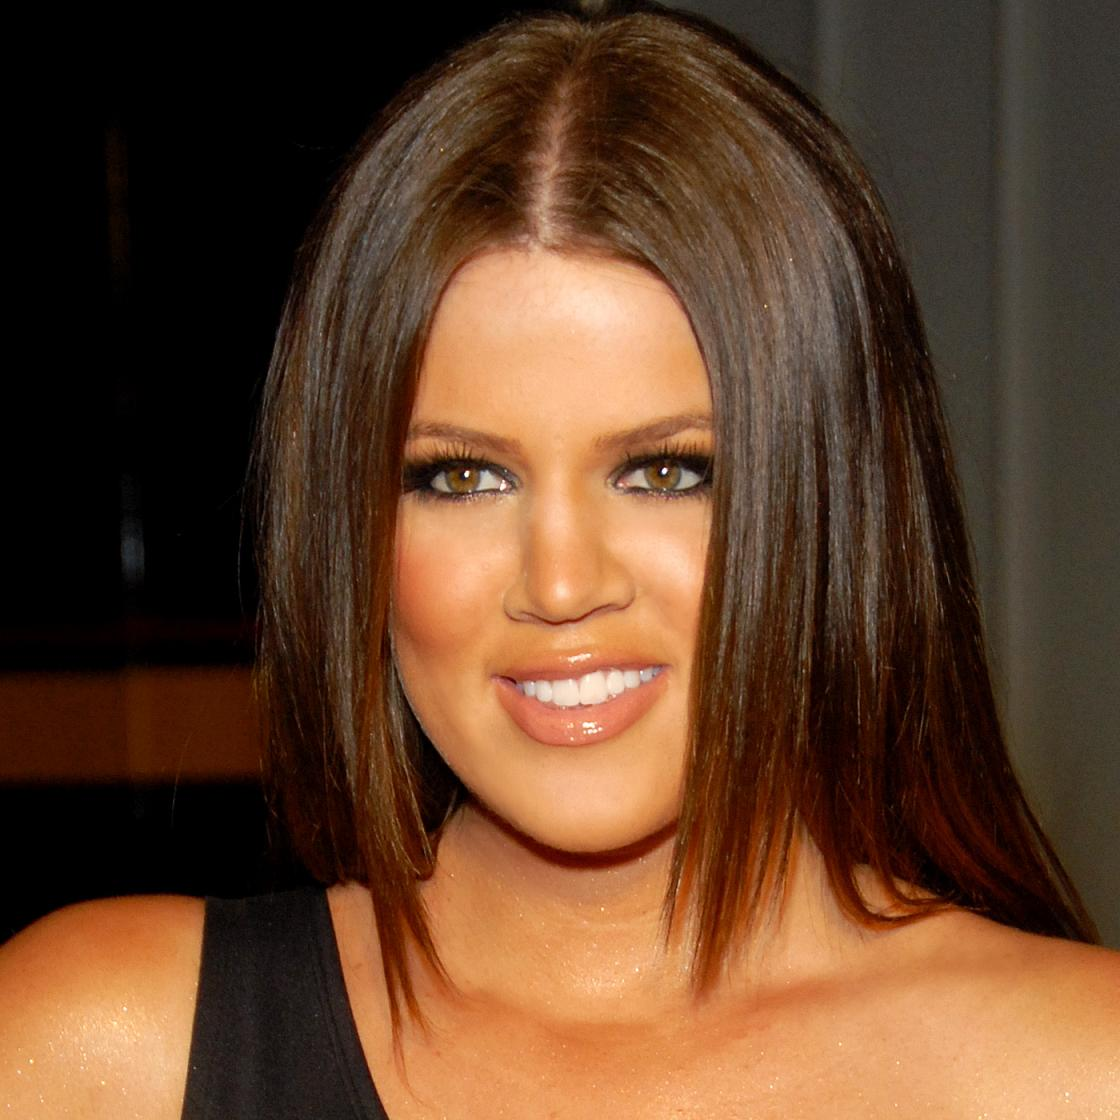 Khloe Kardashian Bio, Net Worth, Facts